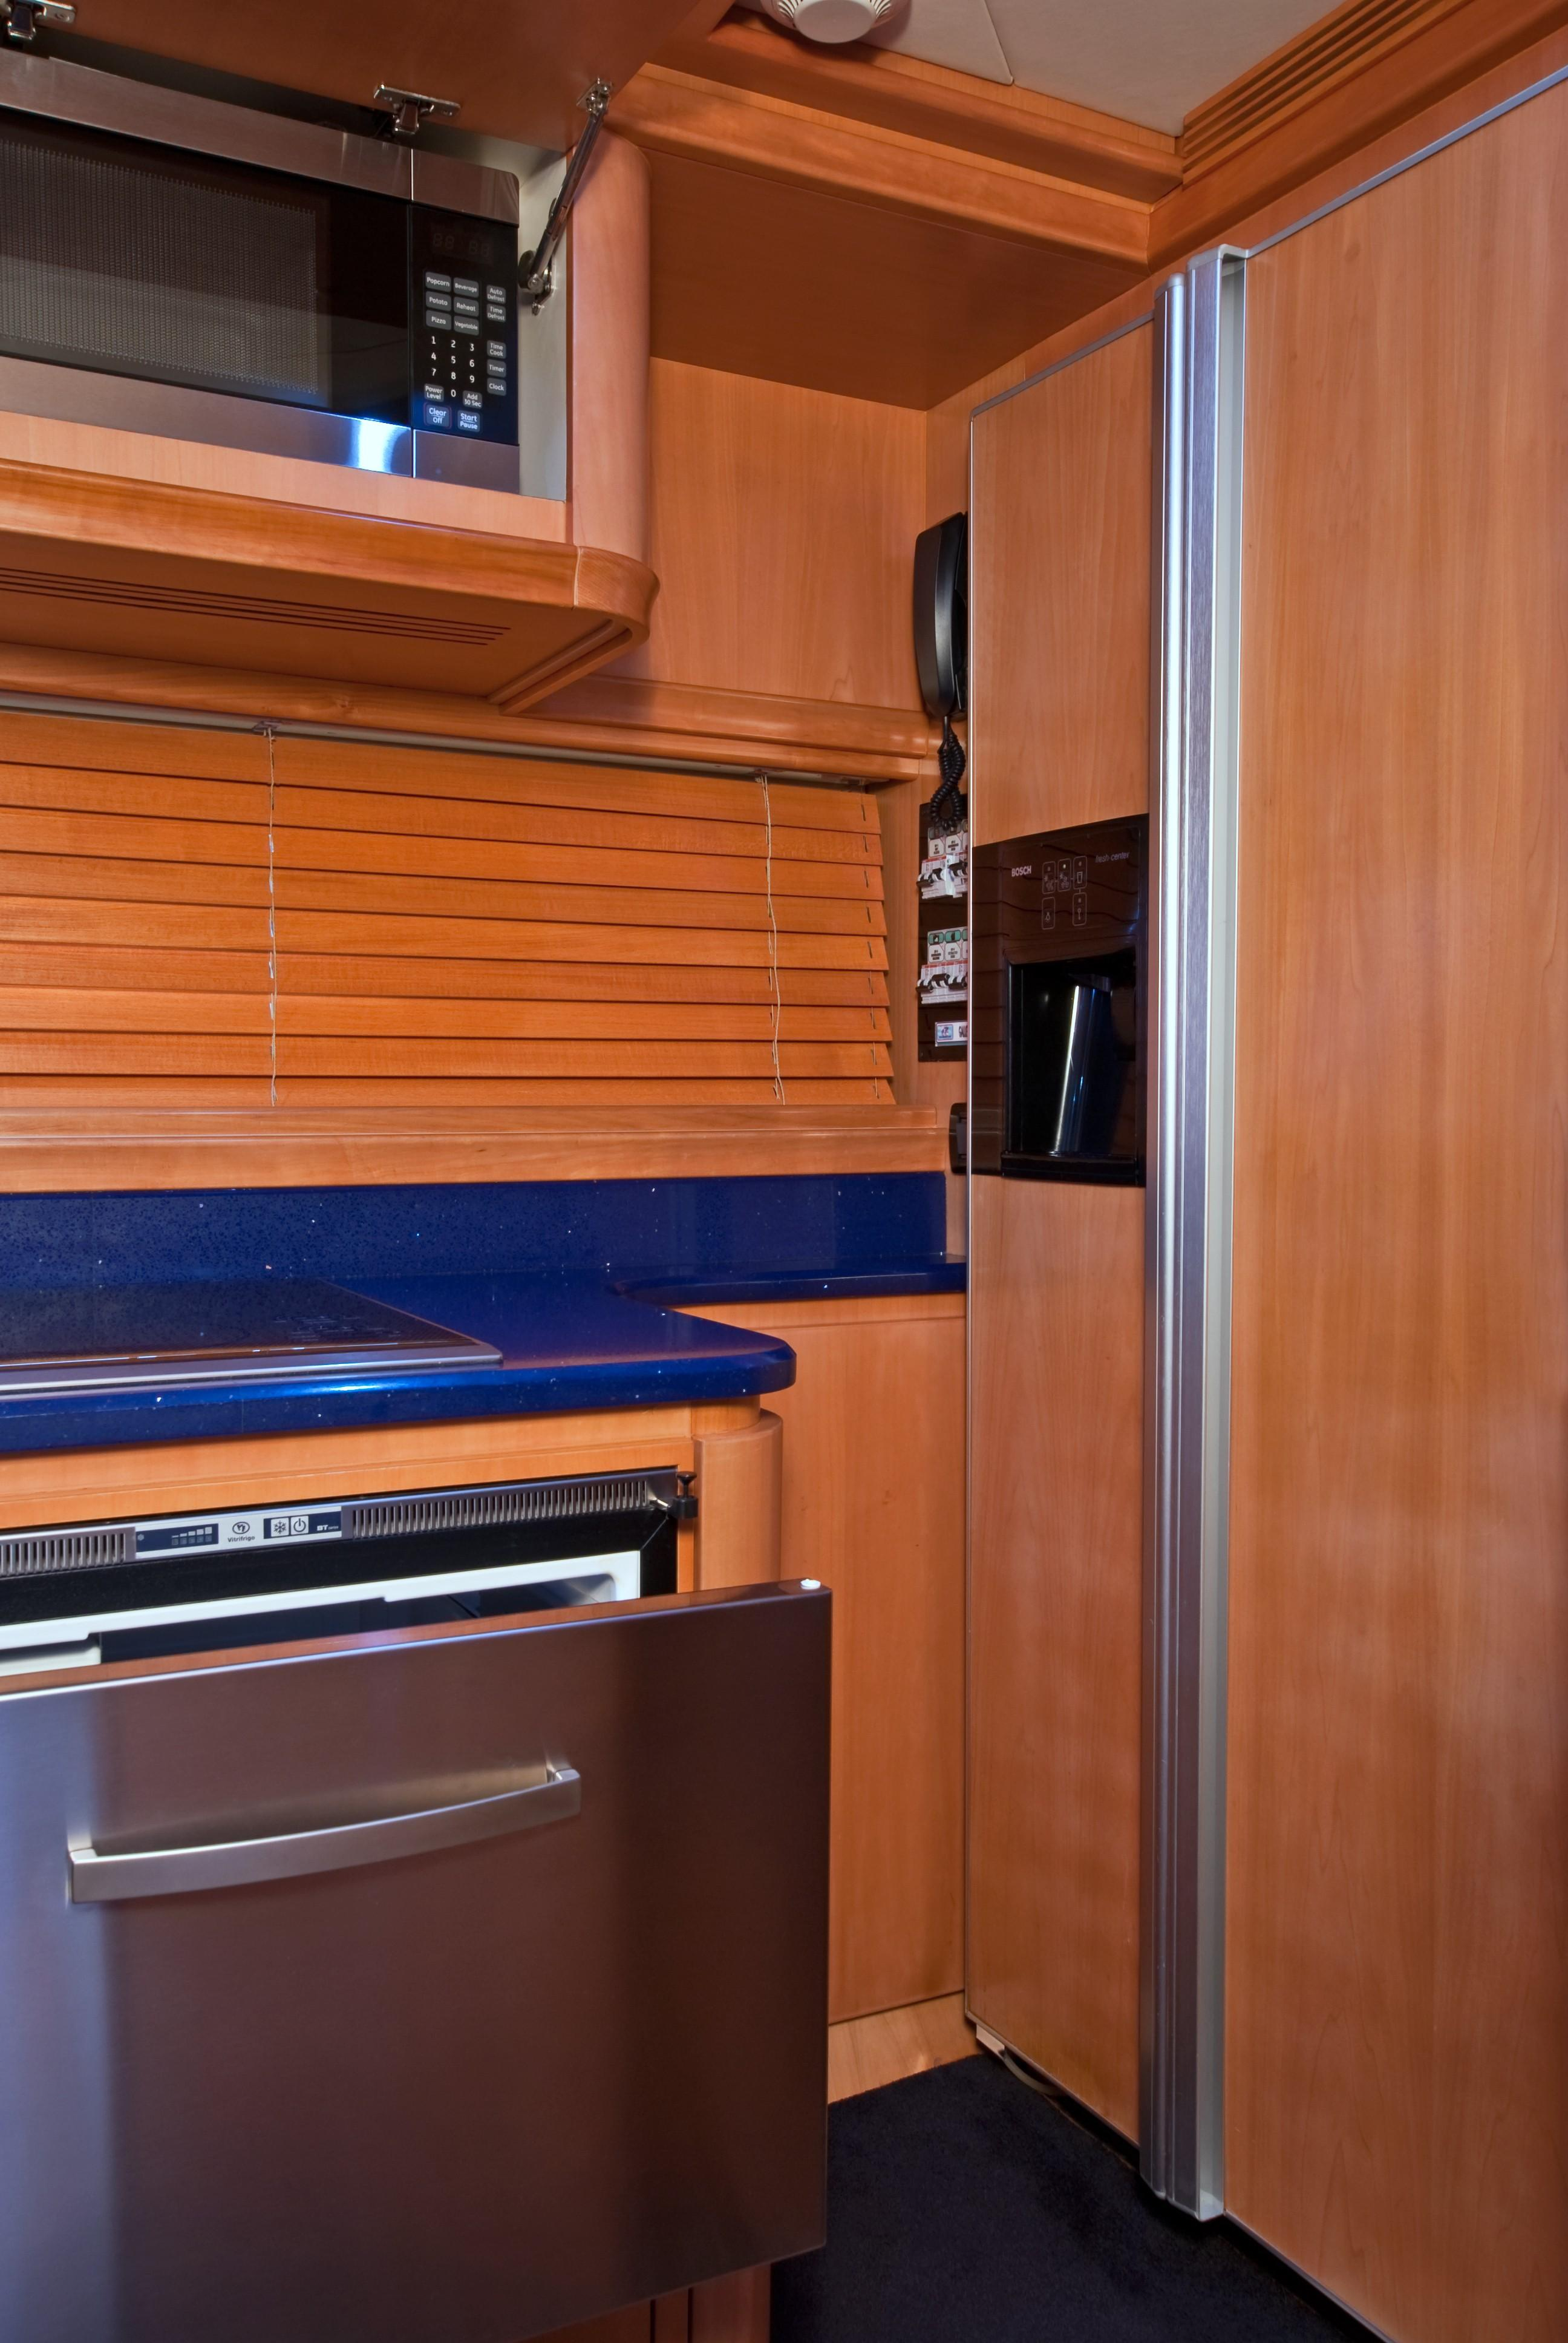 2002 Pershing 88 - Galley Frig and Micro